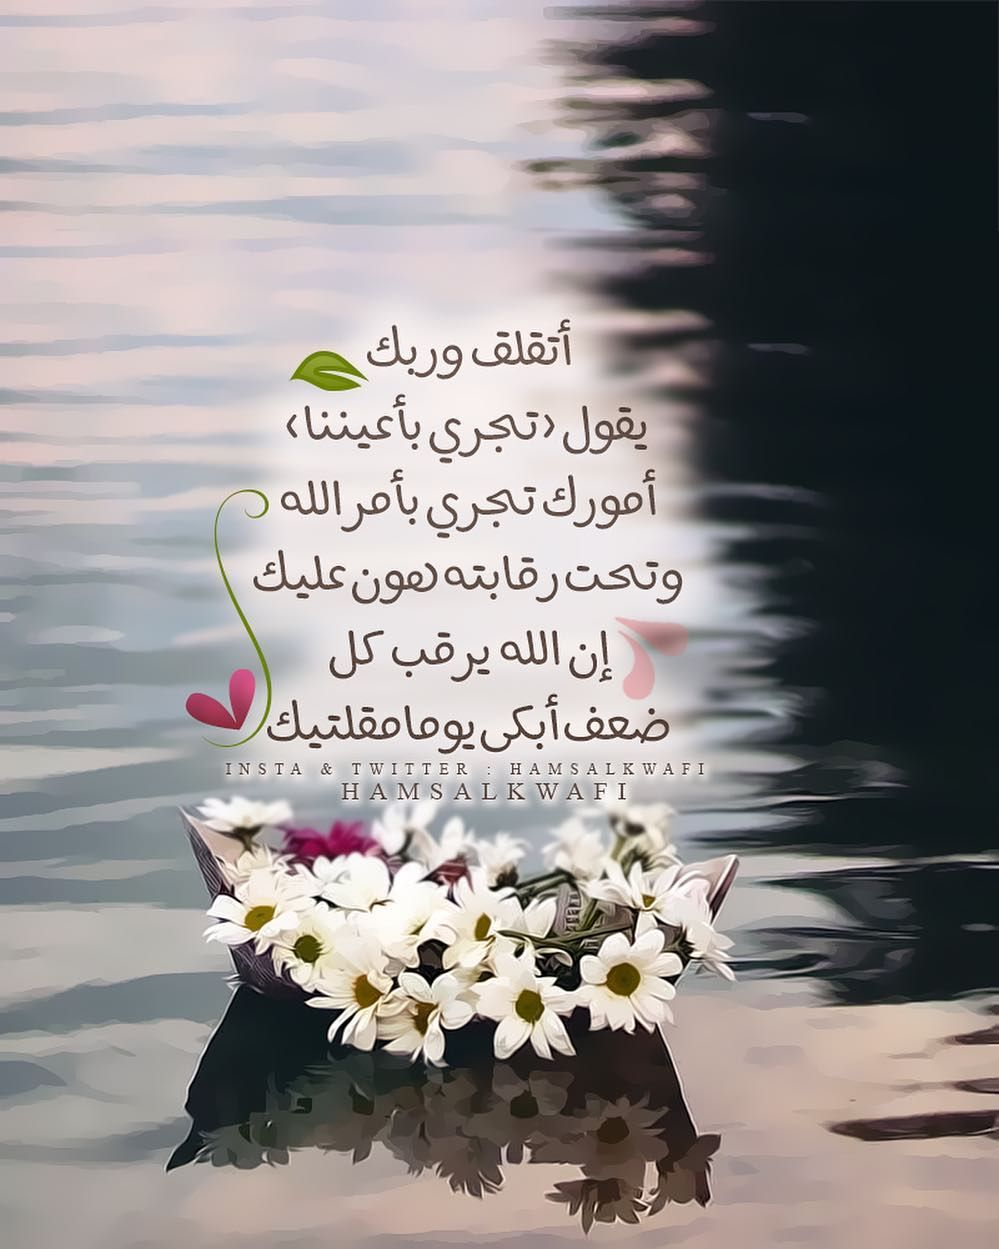 Pin By Rana Trabulsy On تأملات Islamic Quotes Wallpaper Islamic Pictures Arabic Quotes